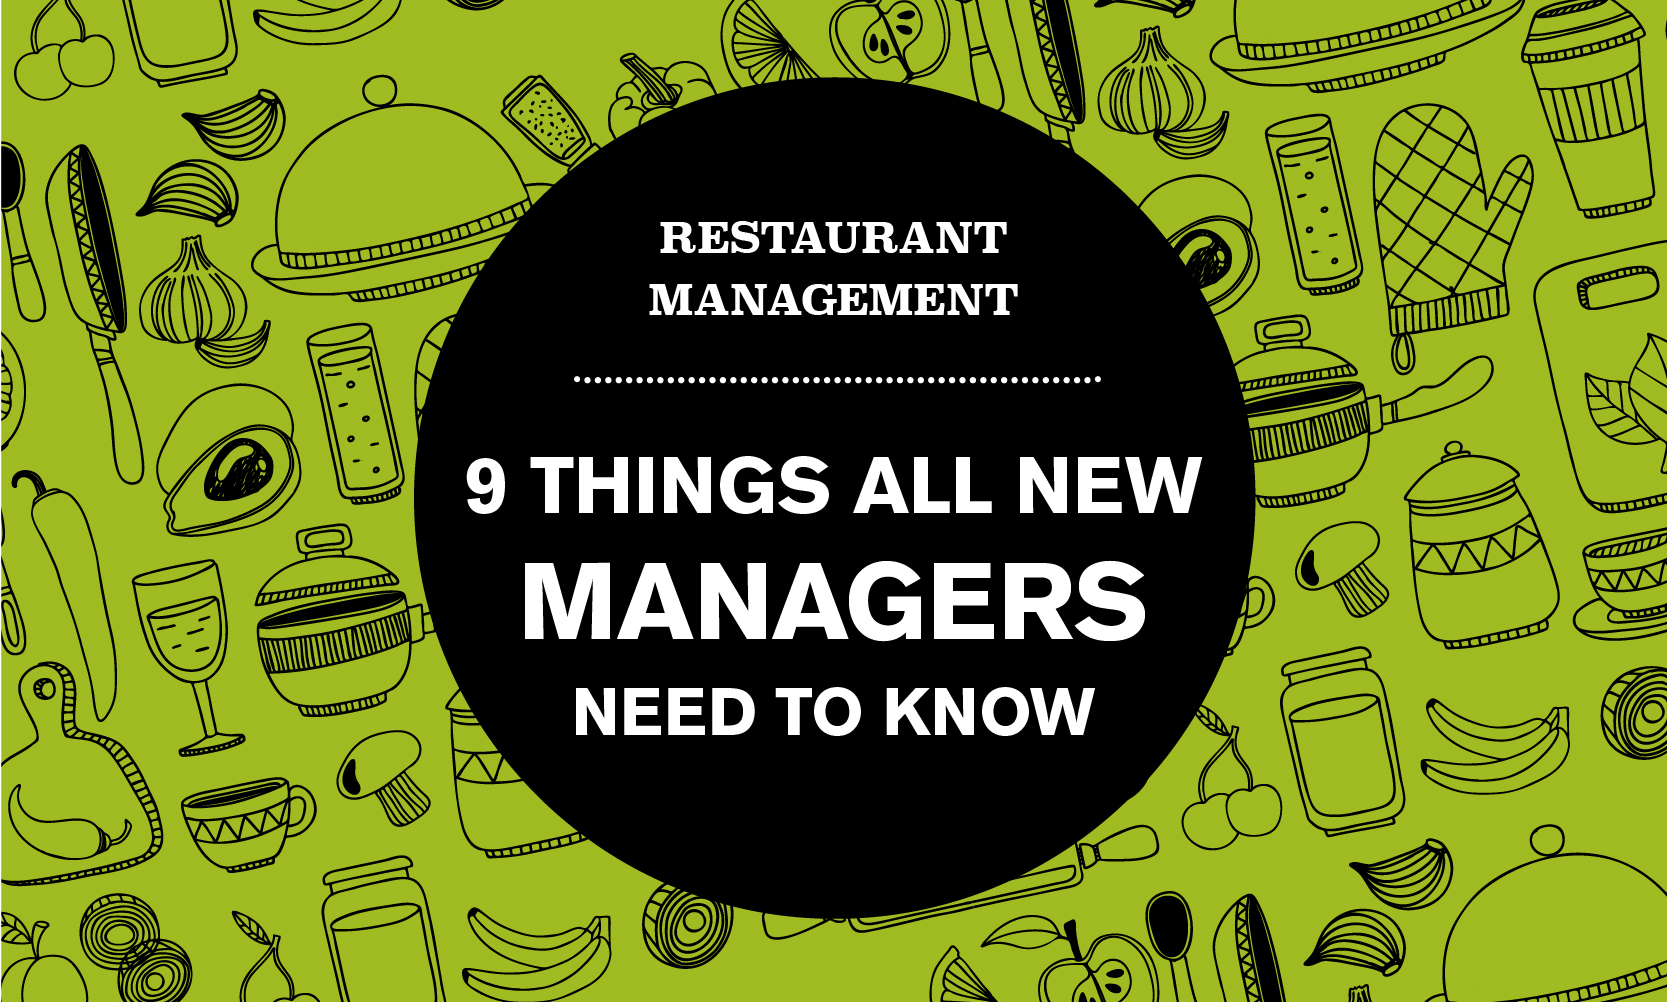 Restaurant Management Tips What Every New Manager Needs